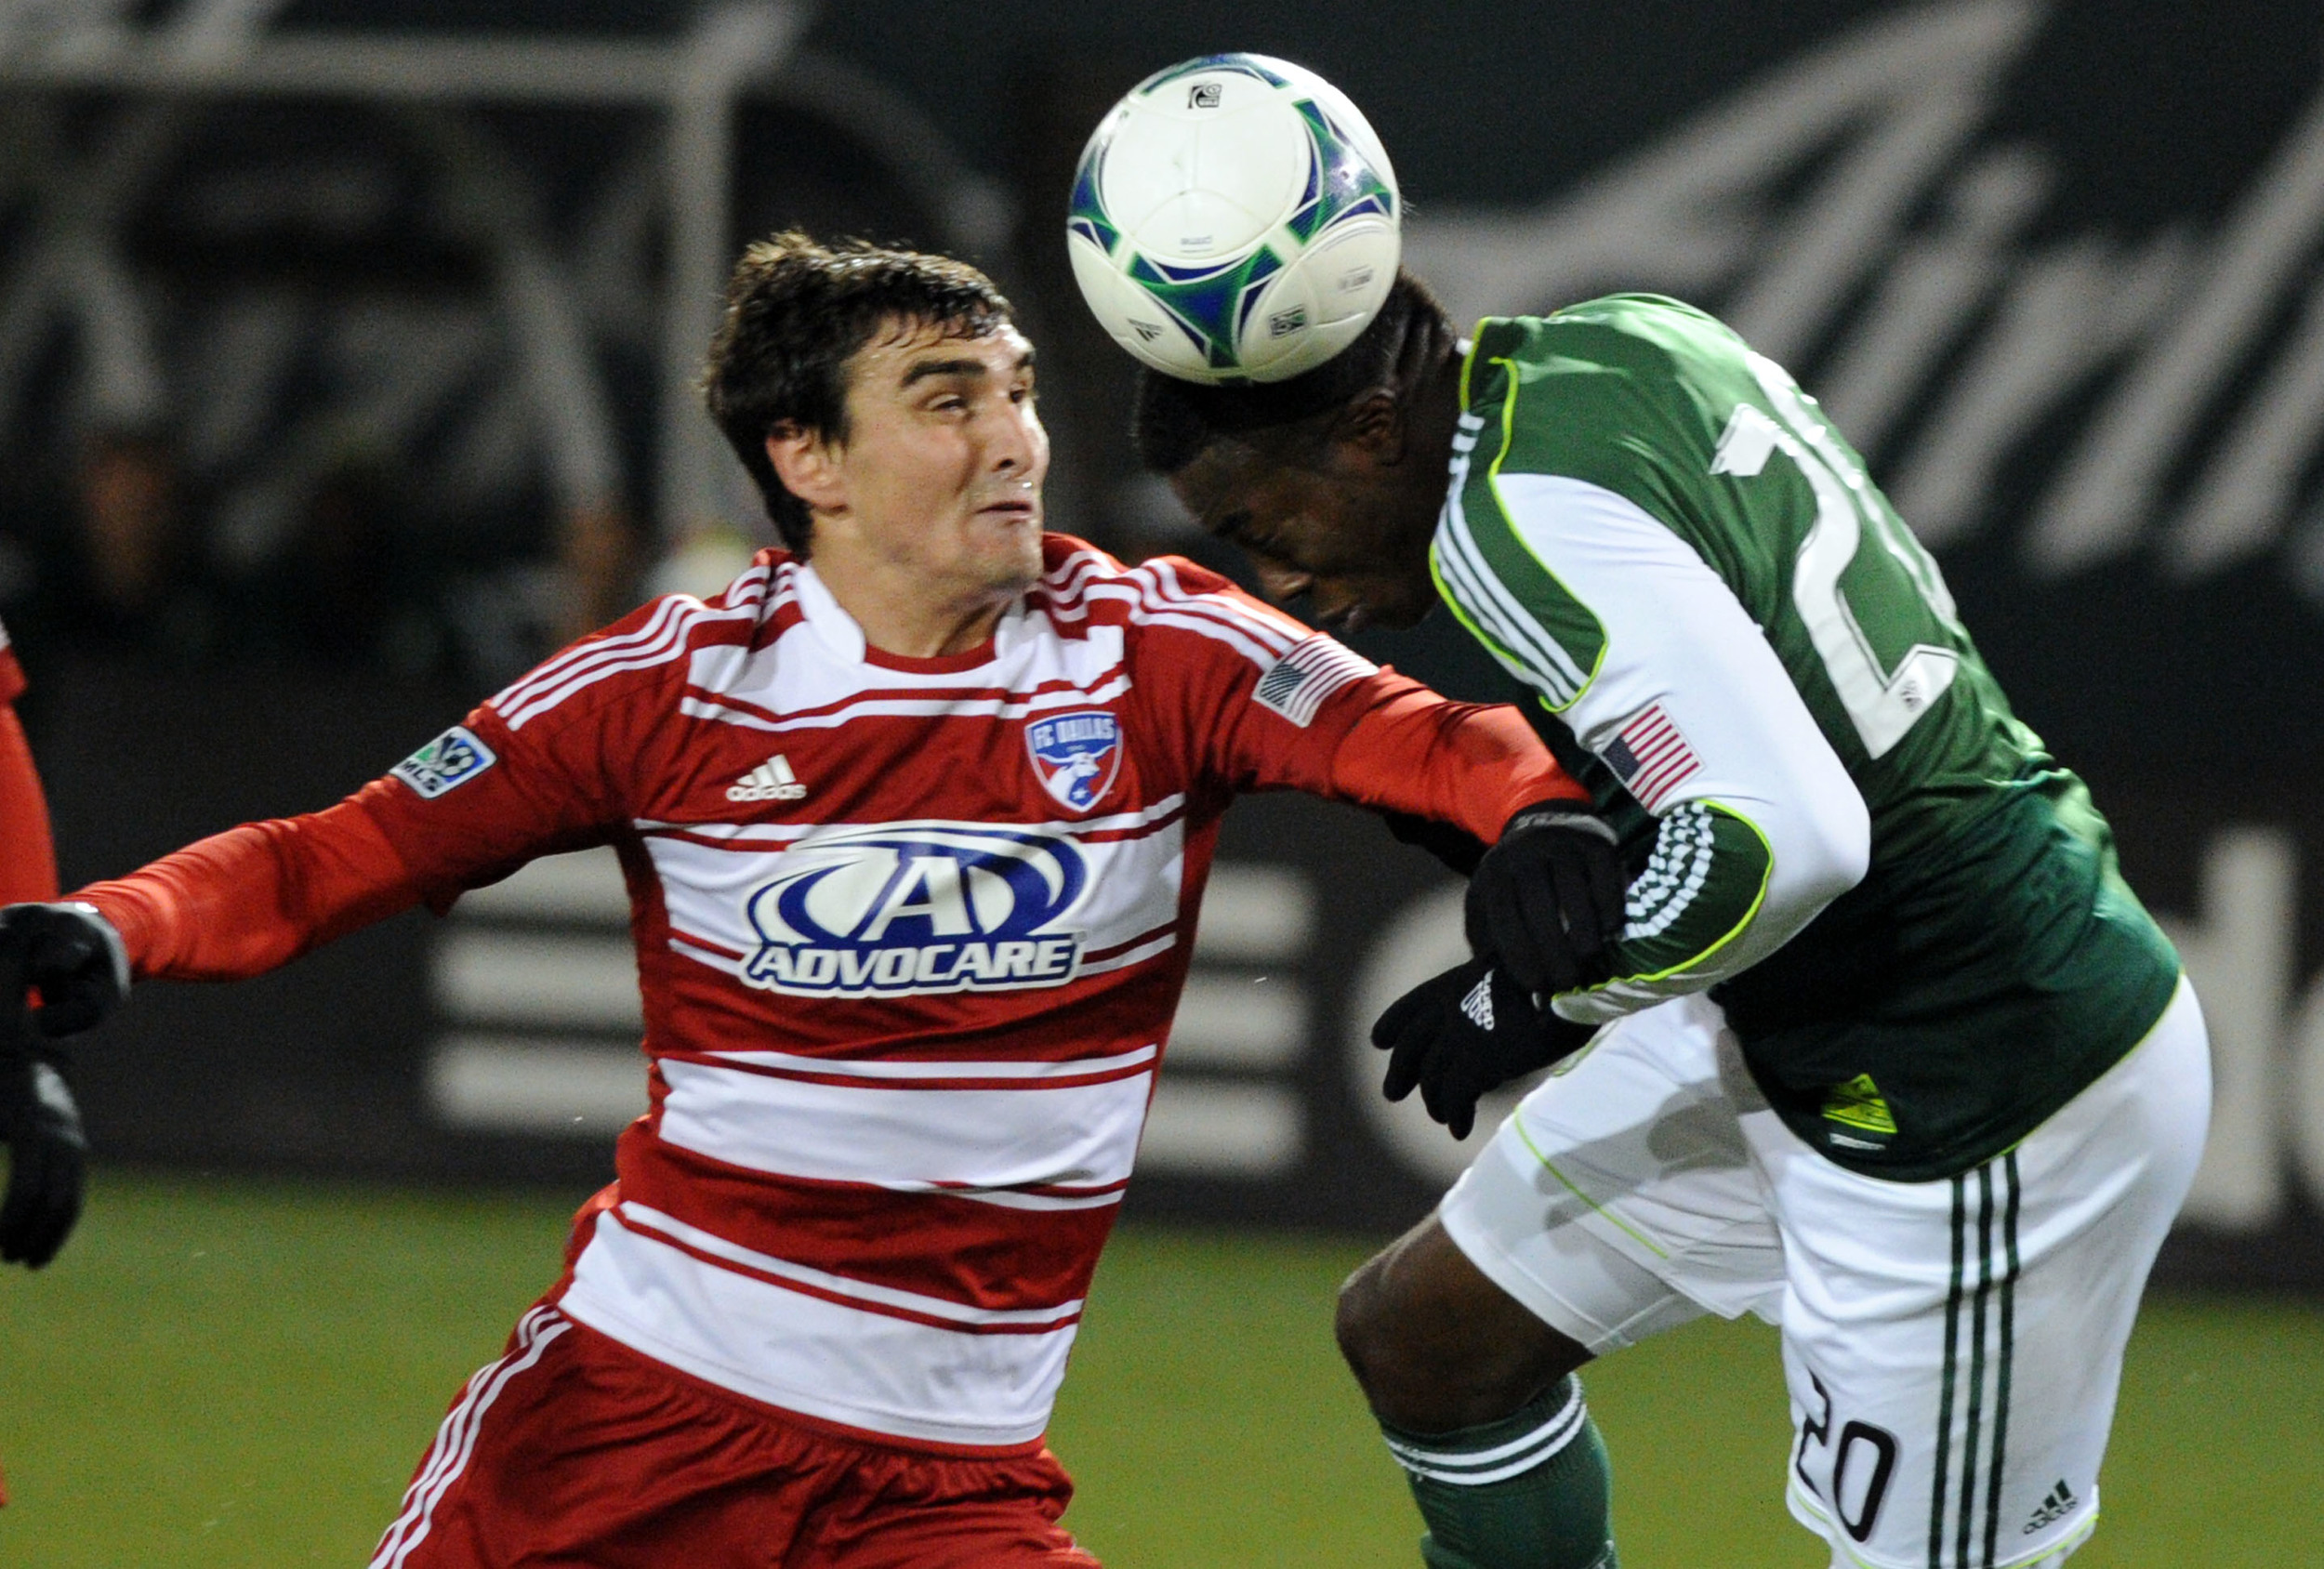 "<a href=""http://properformance.guru/bobby-warshaw"">Bobby Warshaw</a><strong>Pro Since 2011, FC Dallas, and Sweden </strong>"